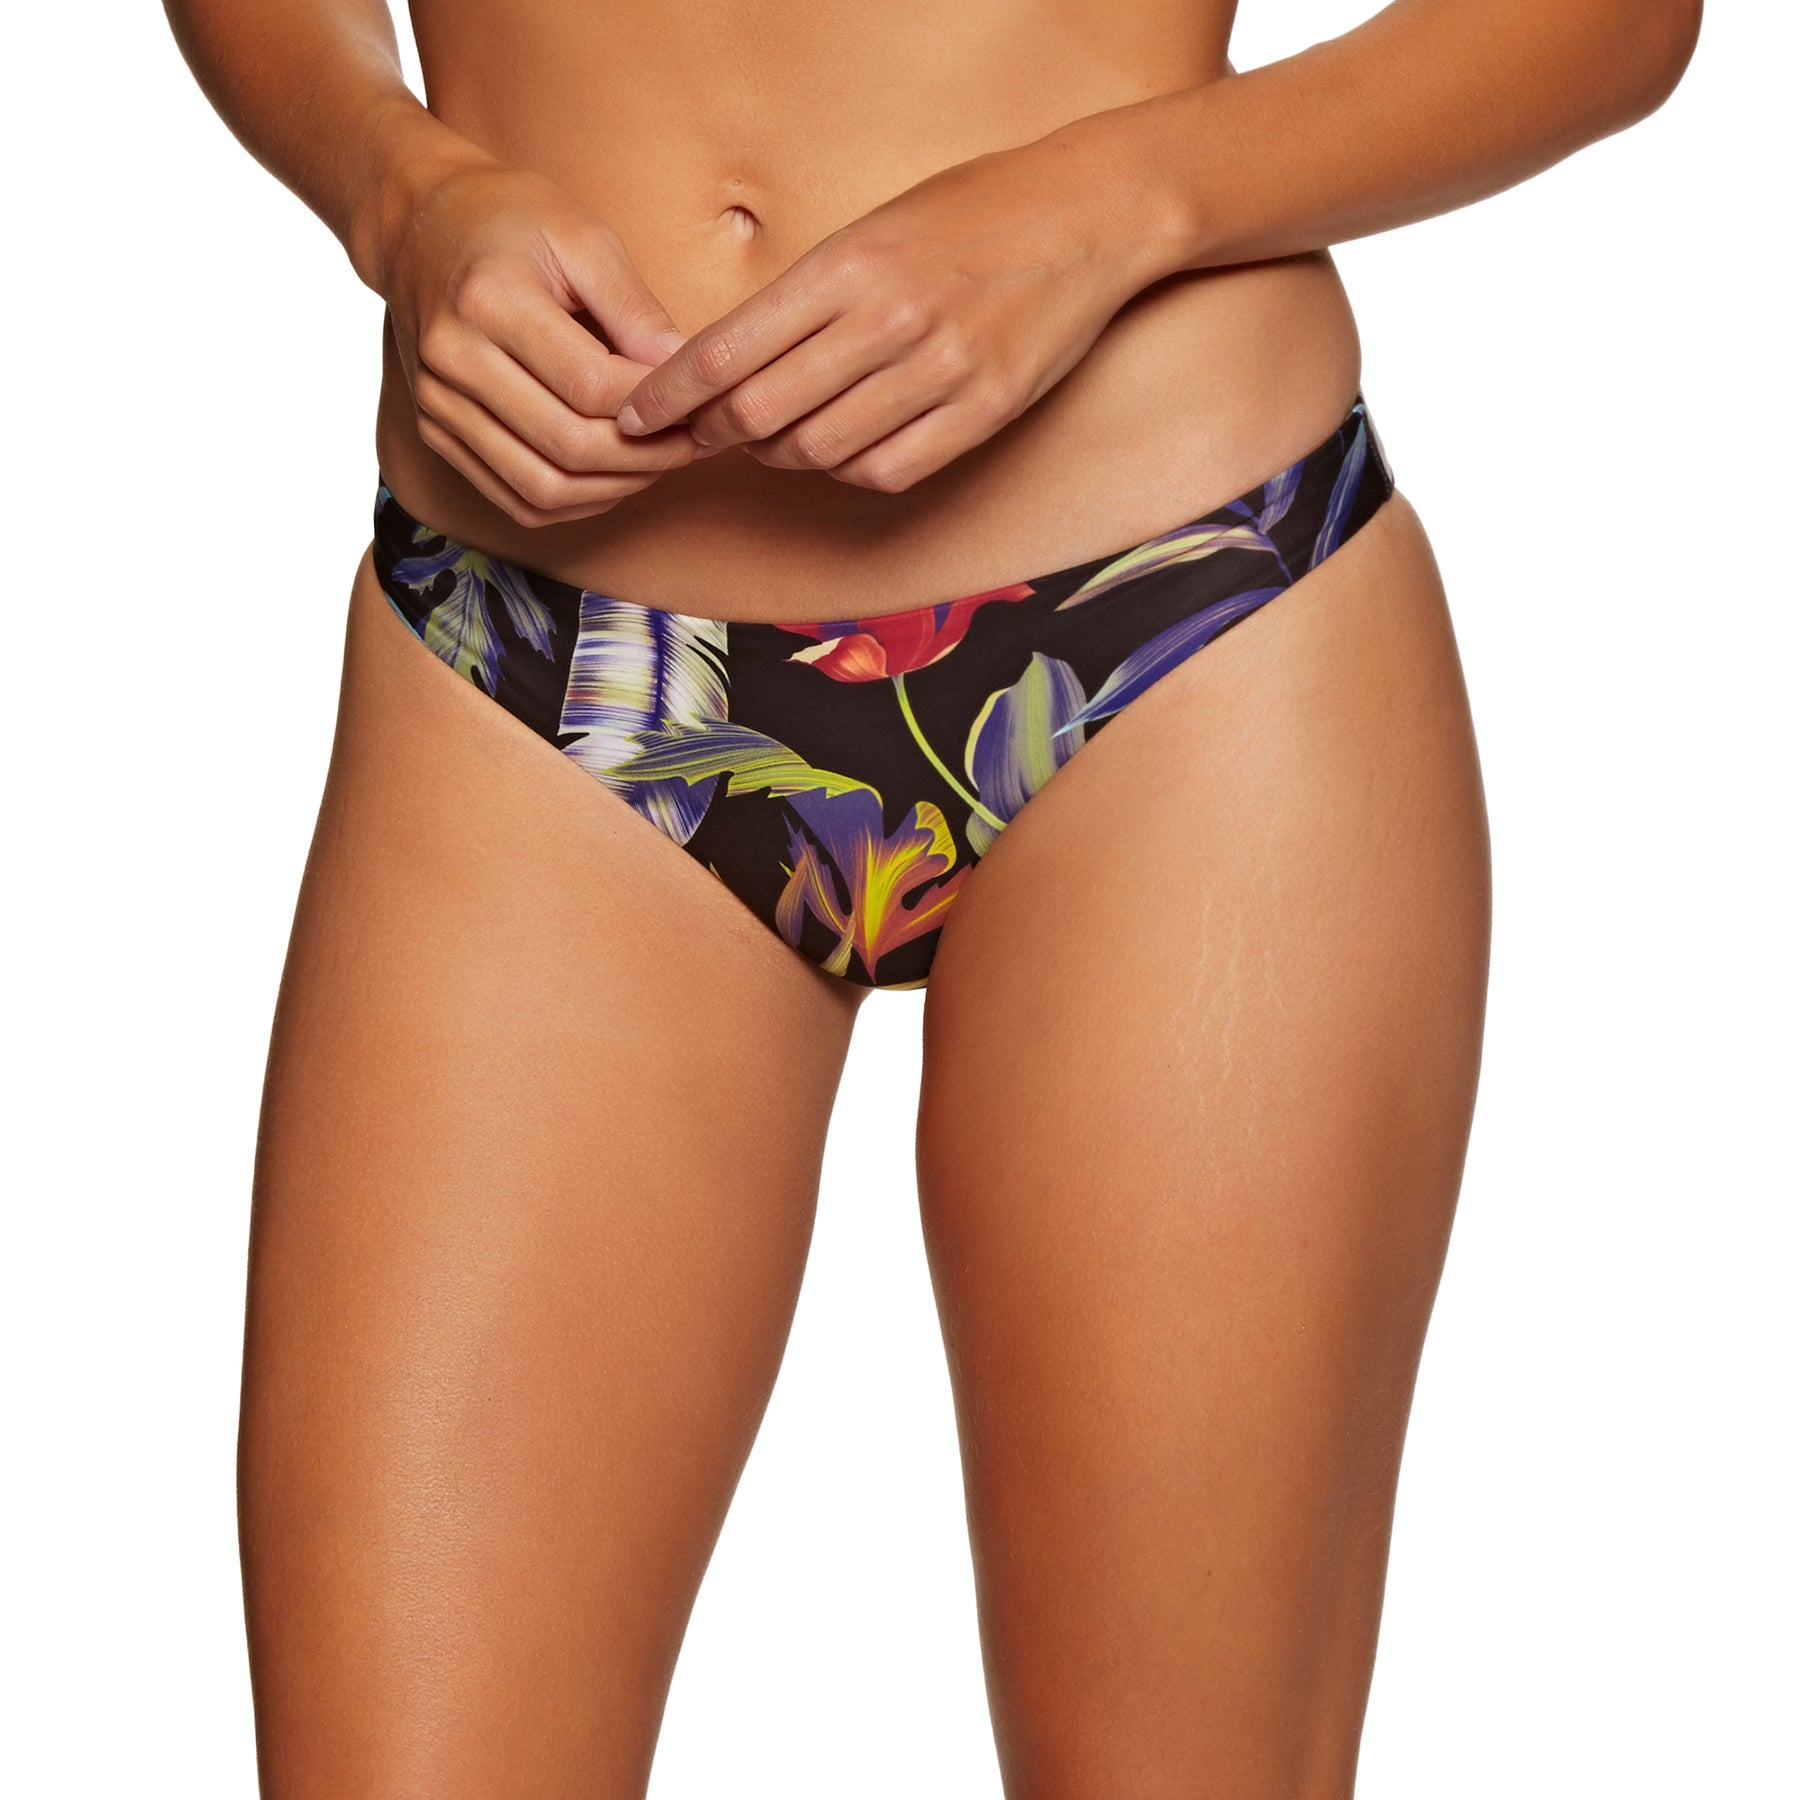 Hurley Quick Drying Floral Surf Bikini Bottoms - Black